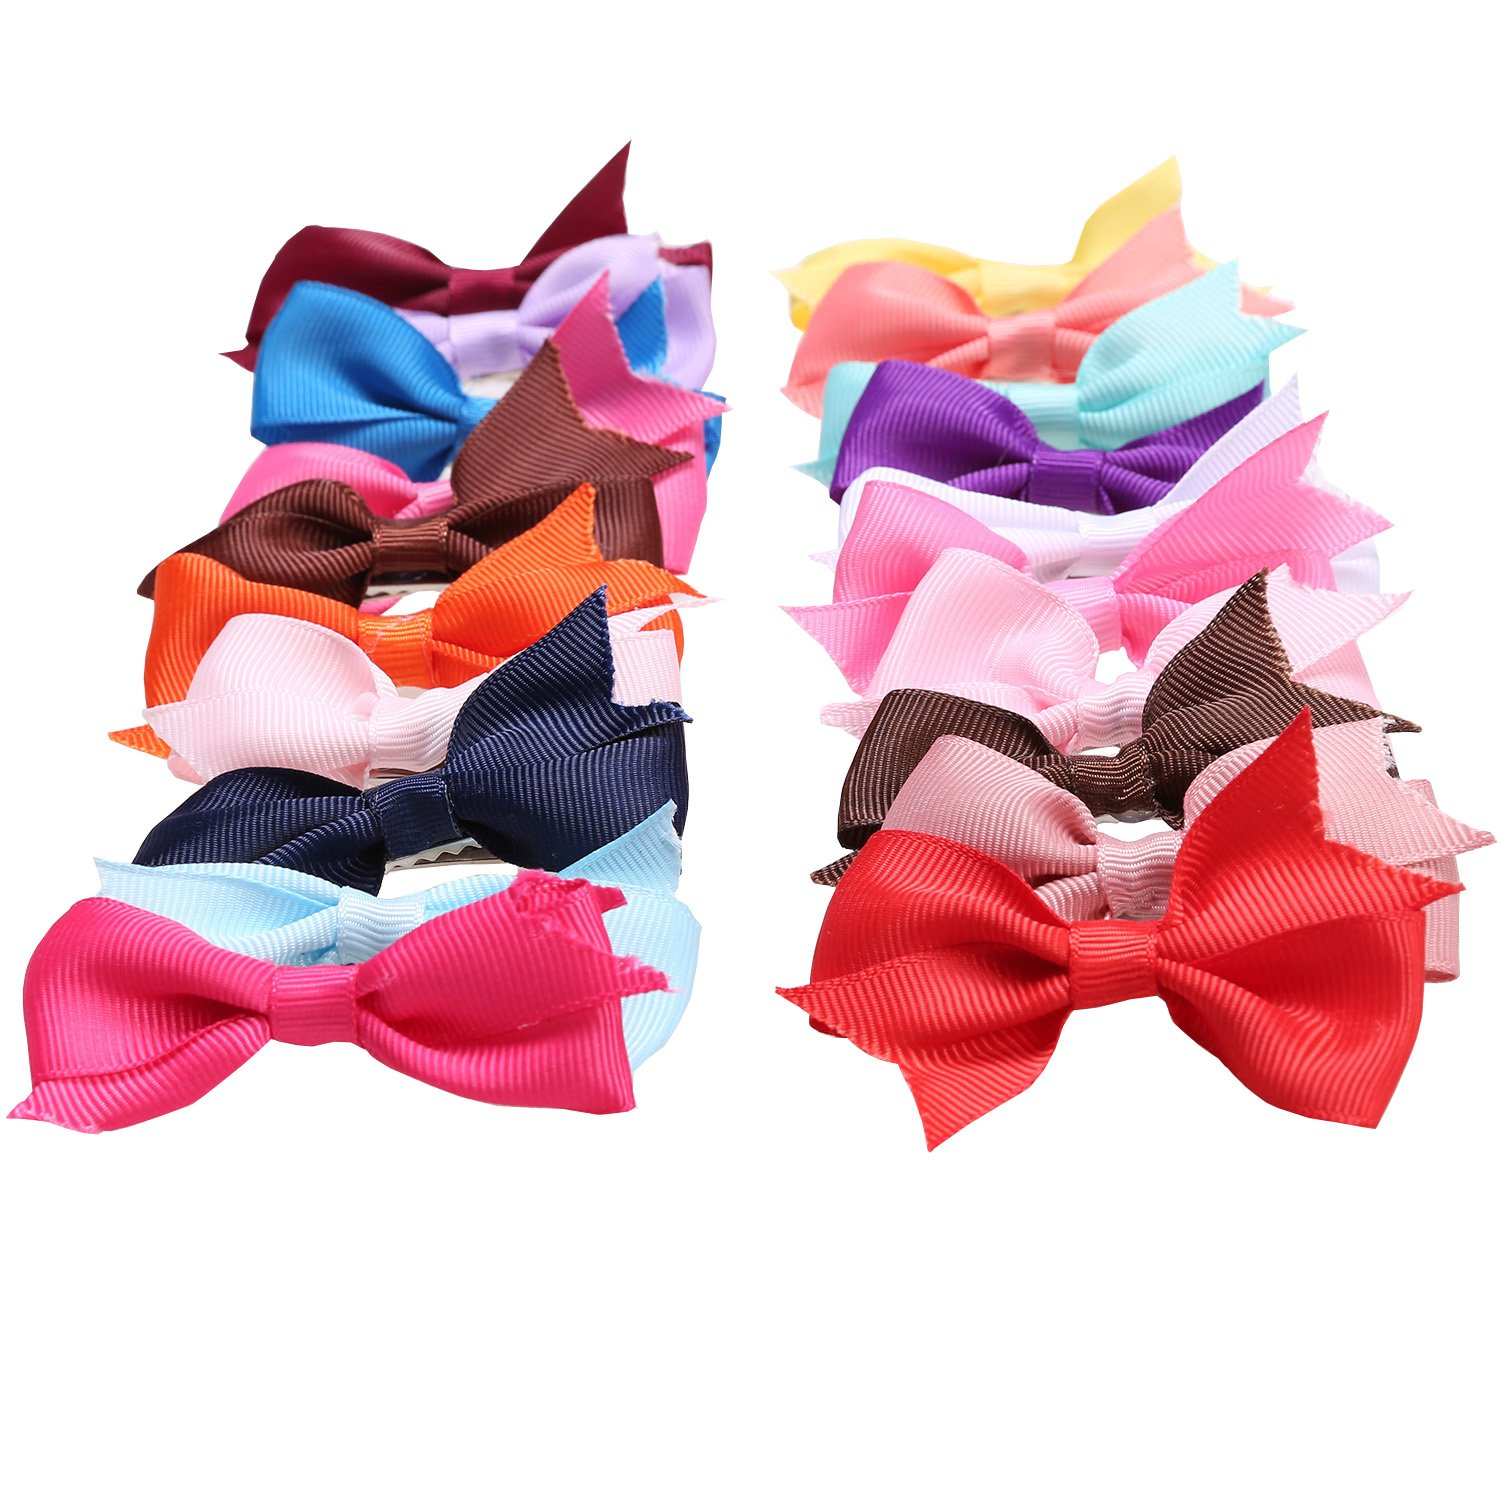 20 Hair Bows Clips for Toddlers Kids, Ribbon Boutique Hair Bows Clips Mini Pinwheel For Baby Girls